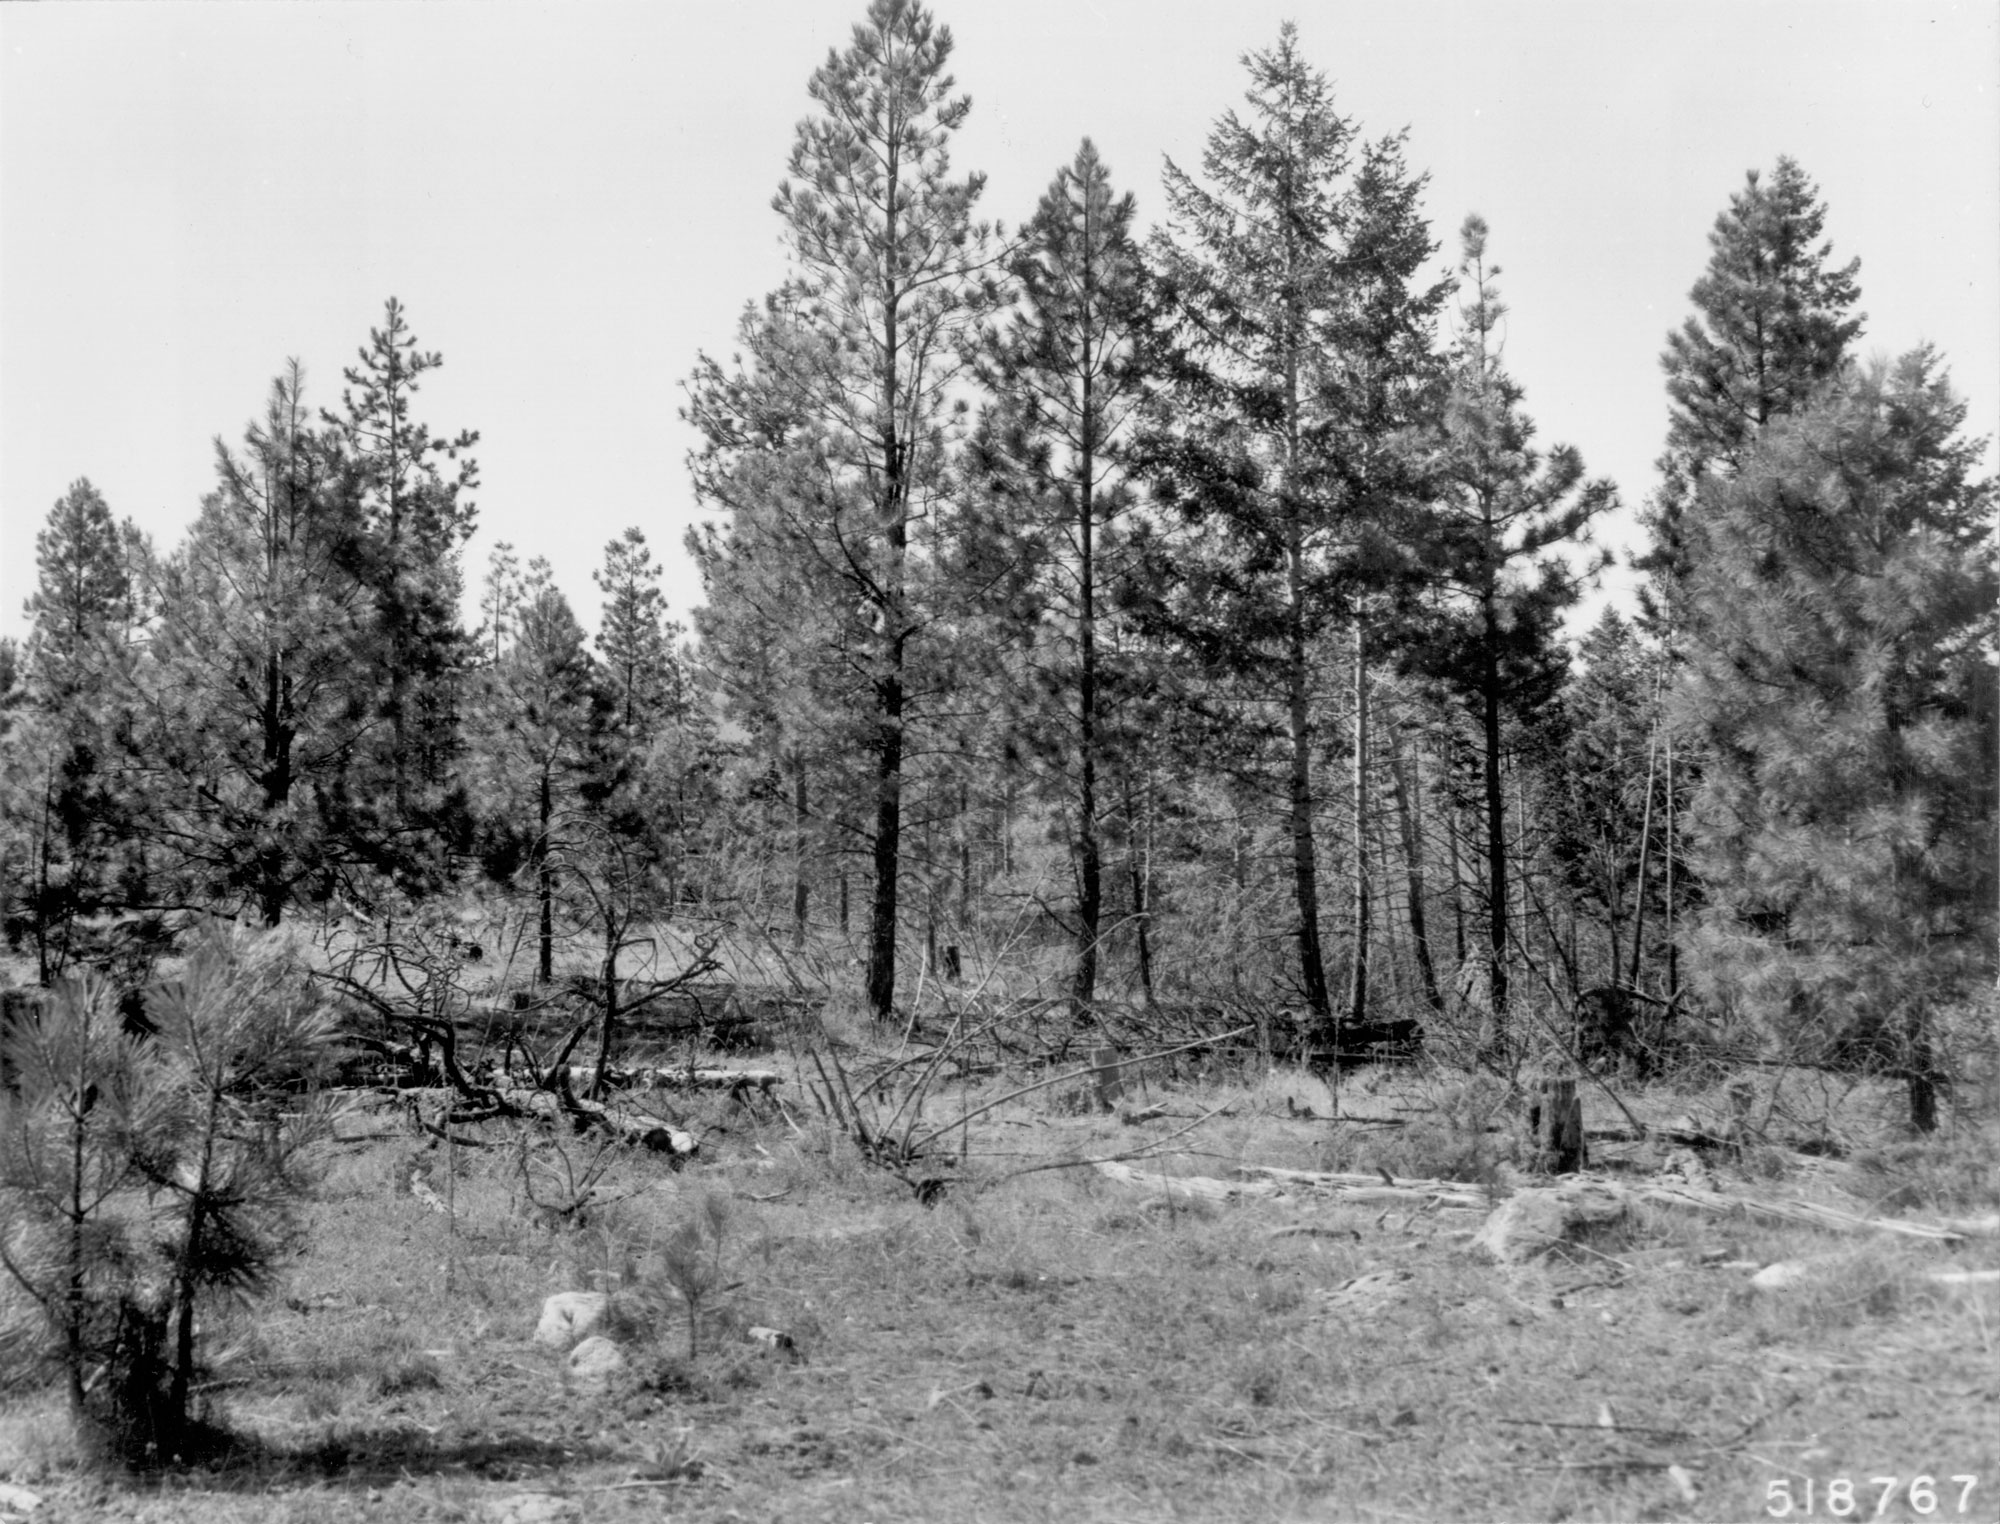 1968. 59 years later. Precommercial thinning and pruning in 1968 removed mature pines and opened up young pine stand. This benefitted some bitterbrush plants, but those in left foreground under and near leave trees show further deterioration. Slash has added to heavy fuels, while down material is more decomposed.